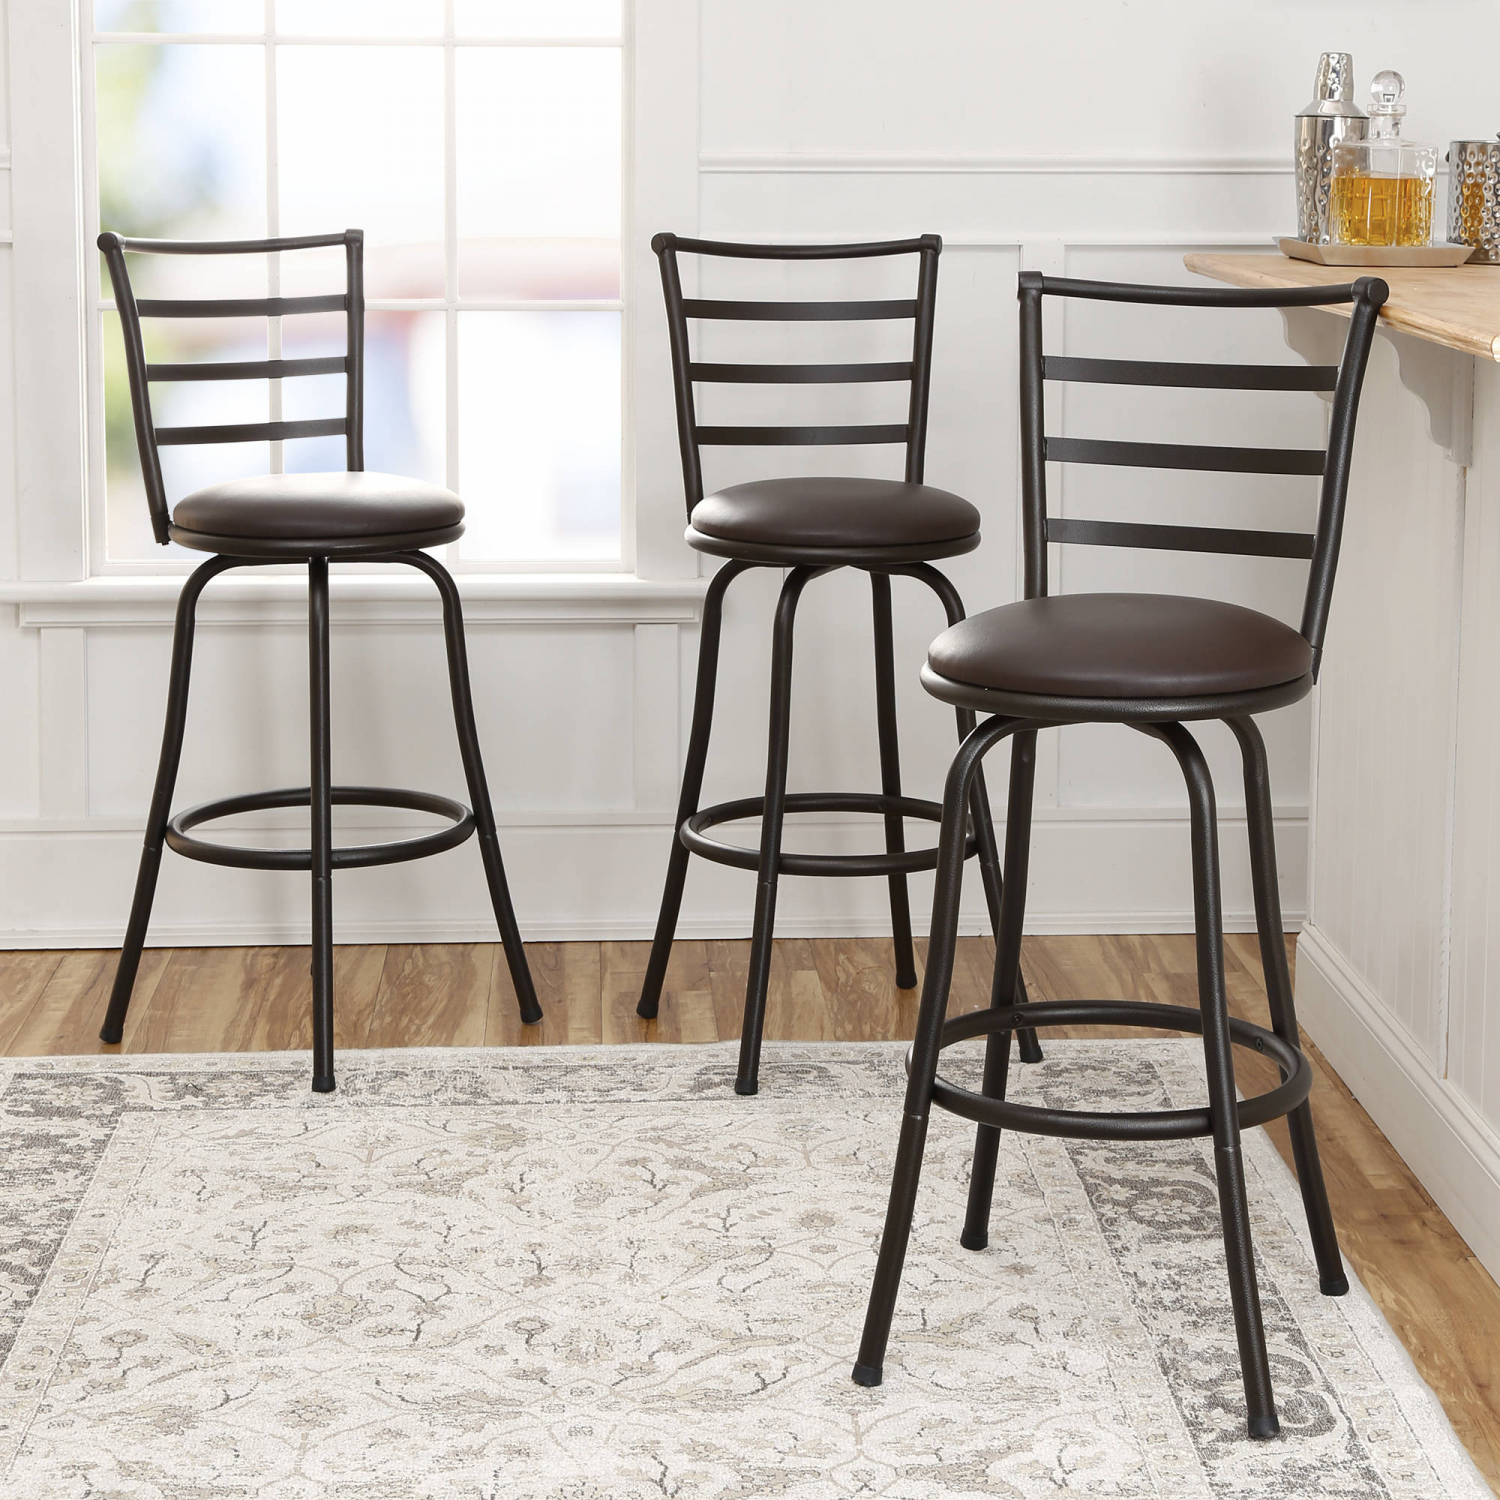 swivel bar stools adjustable counter height kitchen dining